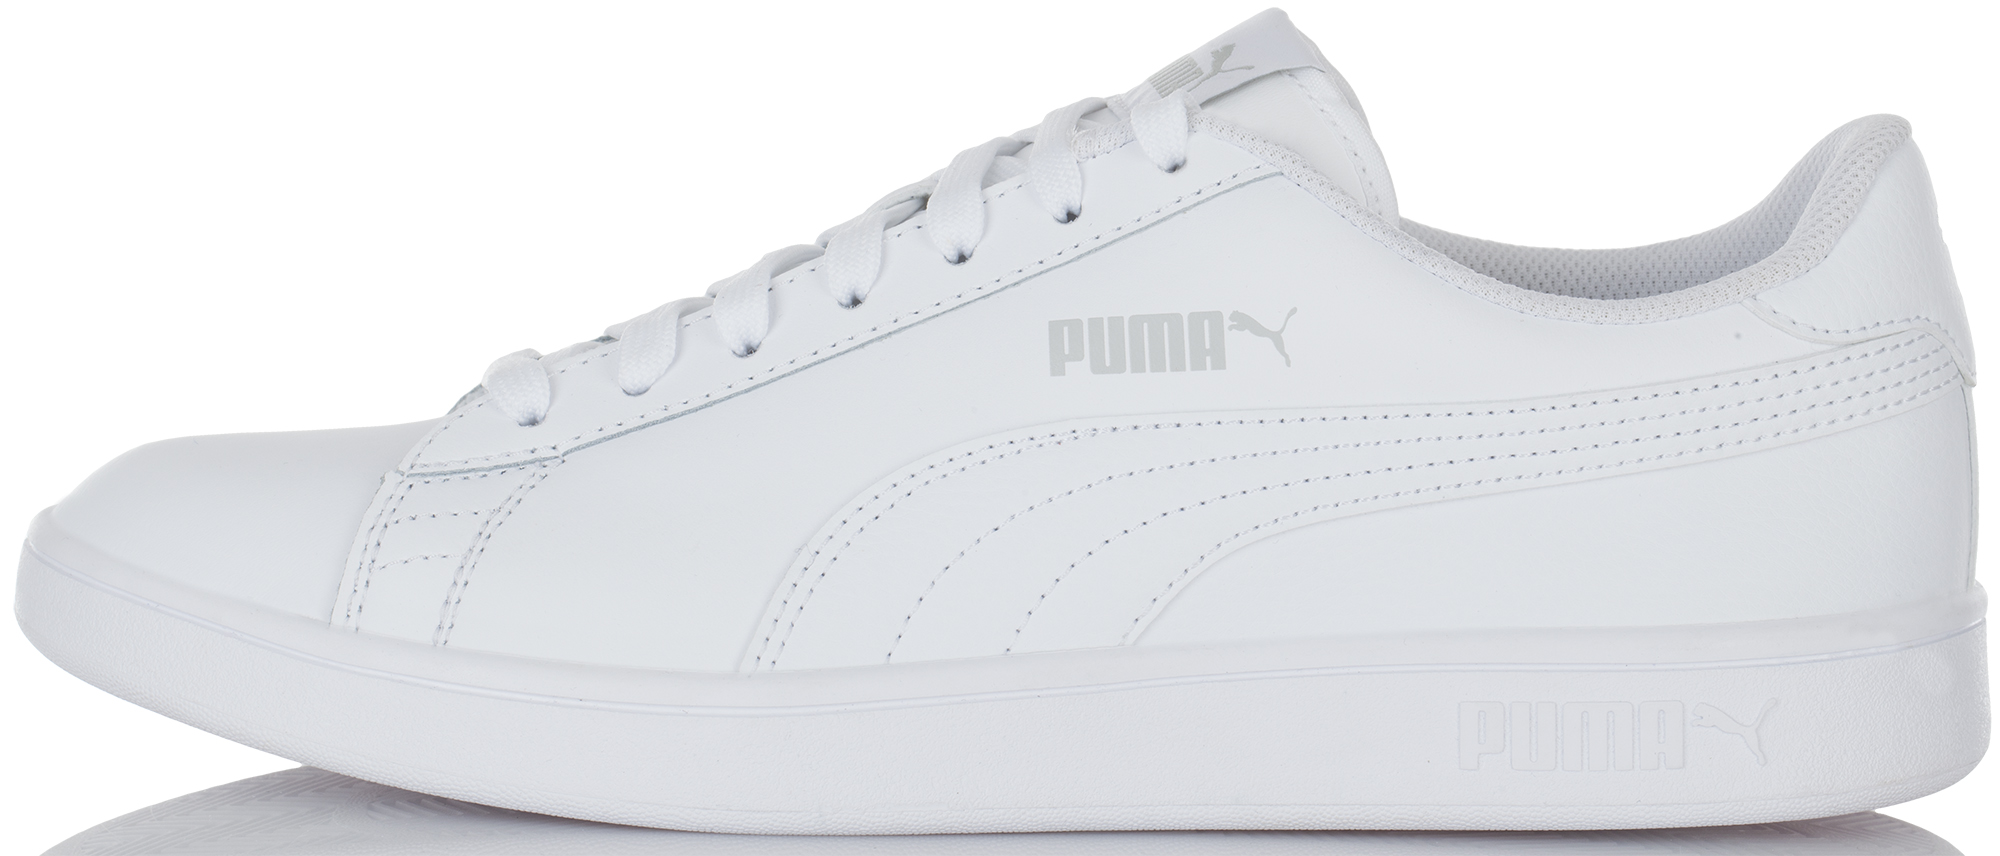 Puma Кеды мужские Puma Smash v2 L smash into pieces smash into pieces the apocalypse dj lp